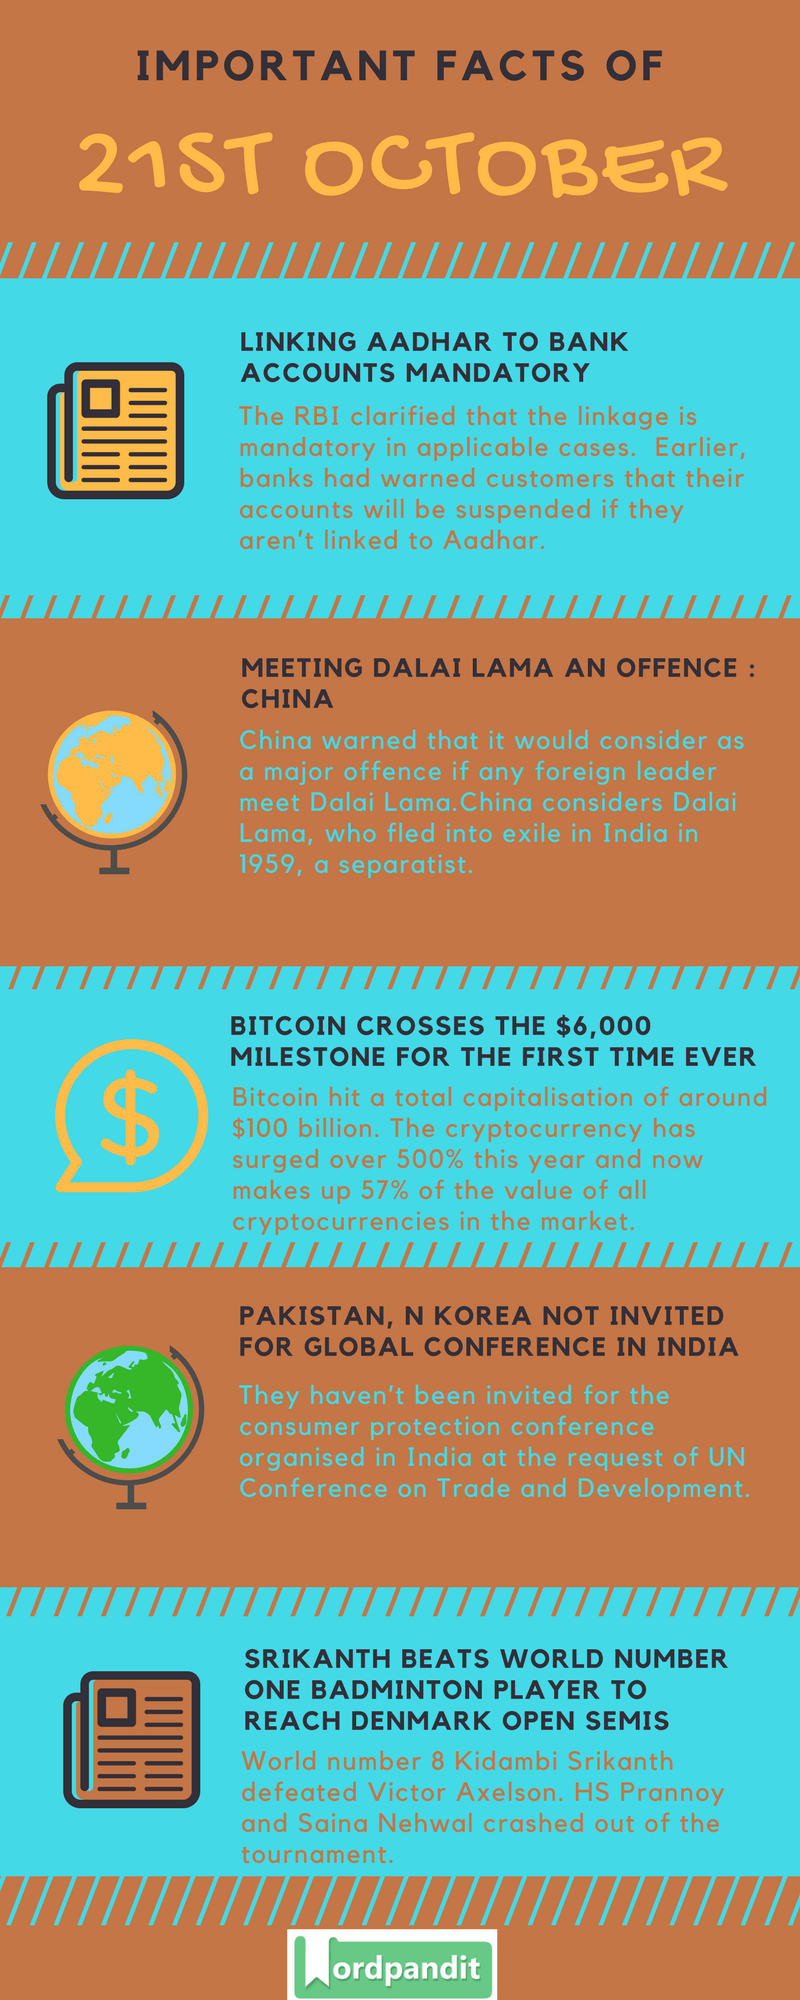 Daily-Current-Affairs-21-october-2017-Current-Affairs-Quiz-october-21-2017-Current-Affairs-Infographic